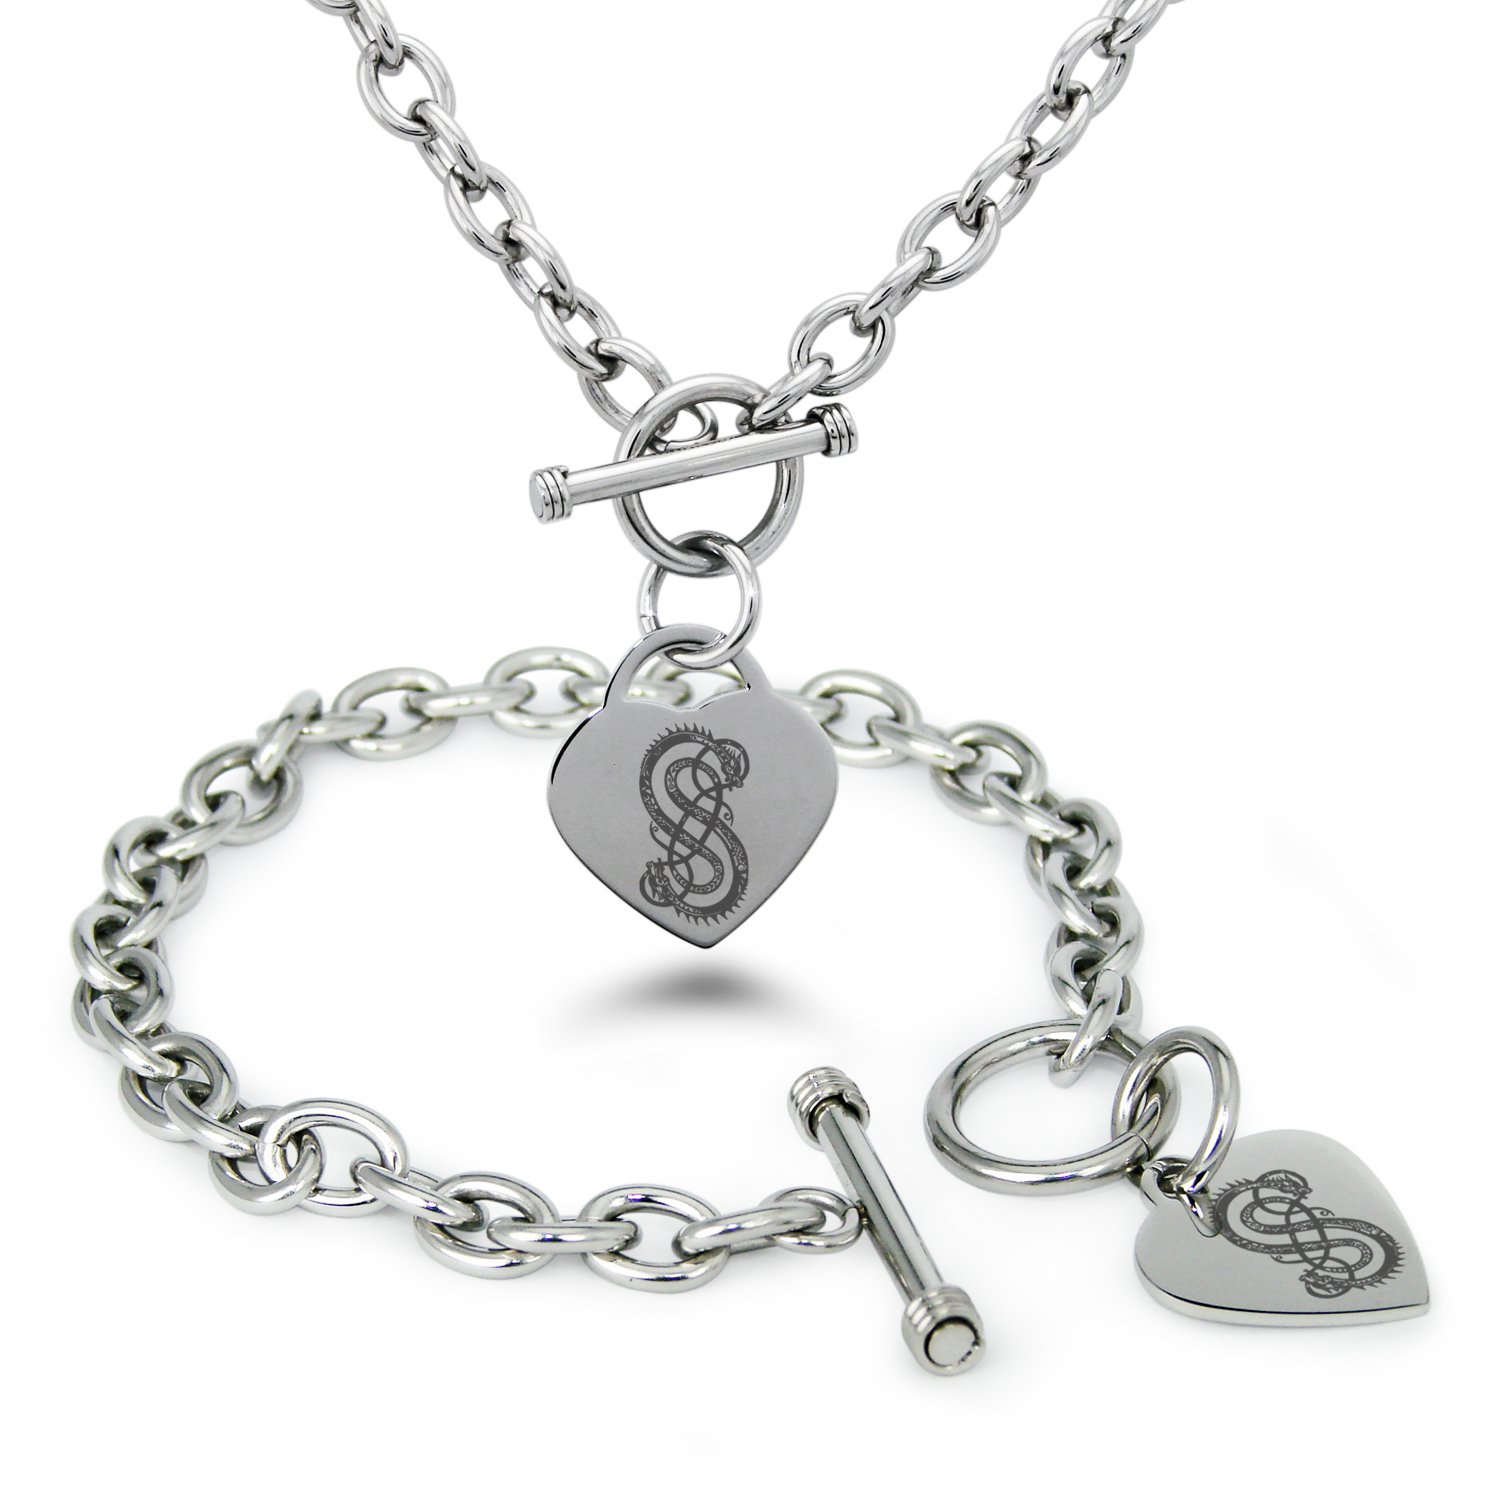 Tioneer Stainless Steel God of Mischief Loki Viking Norse Symbols Heart Charm Bracelet /& Necklace